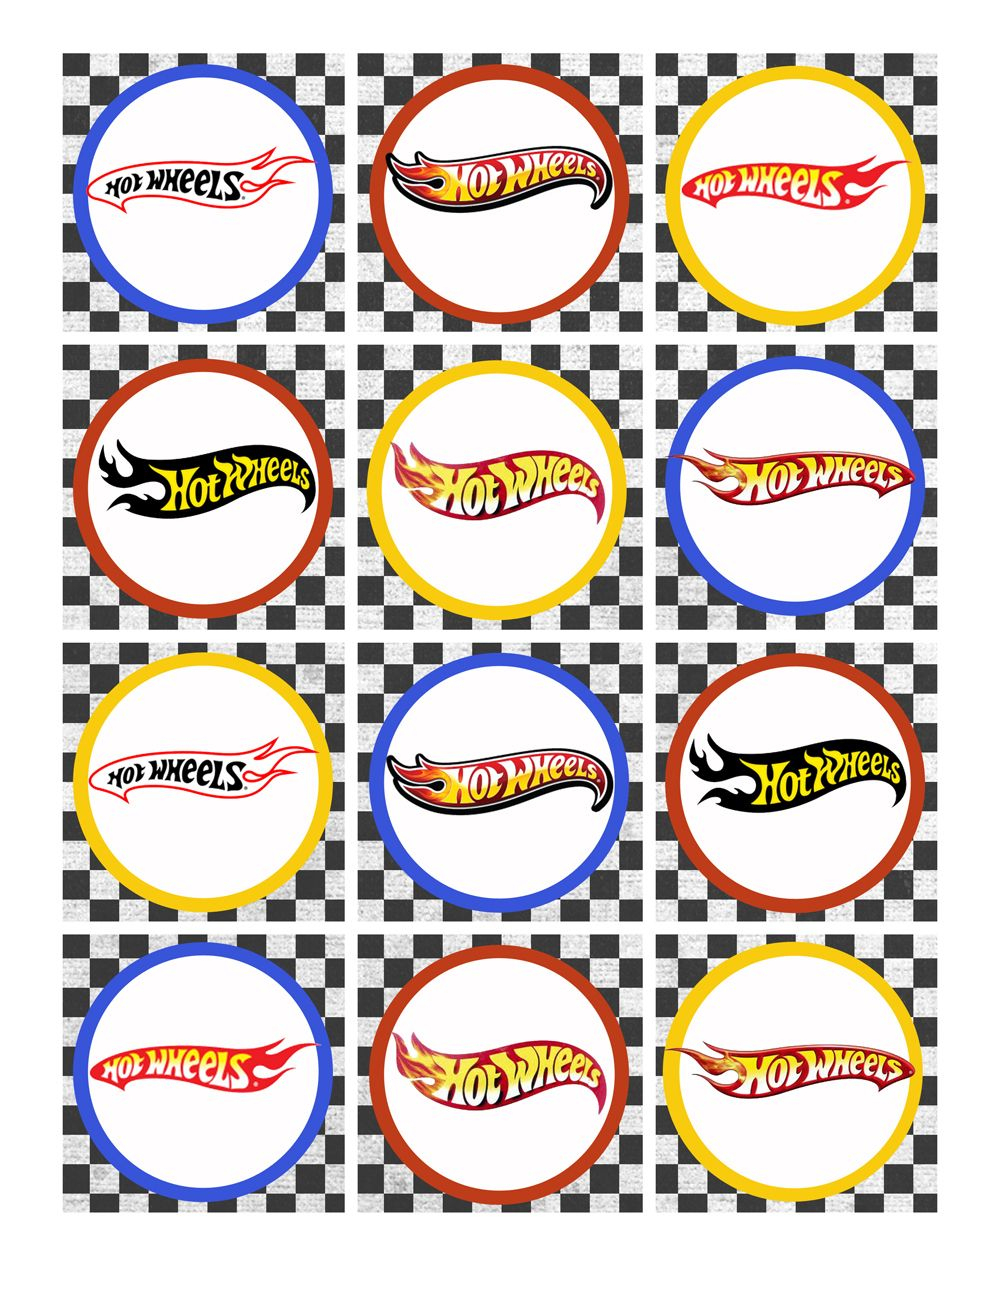 Hot Wheels Birthday Party Pack Free Printables   Party Time   Hot - Free Printable Party Circles